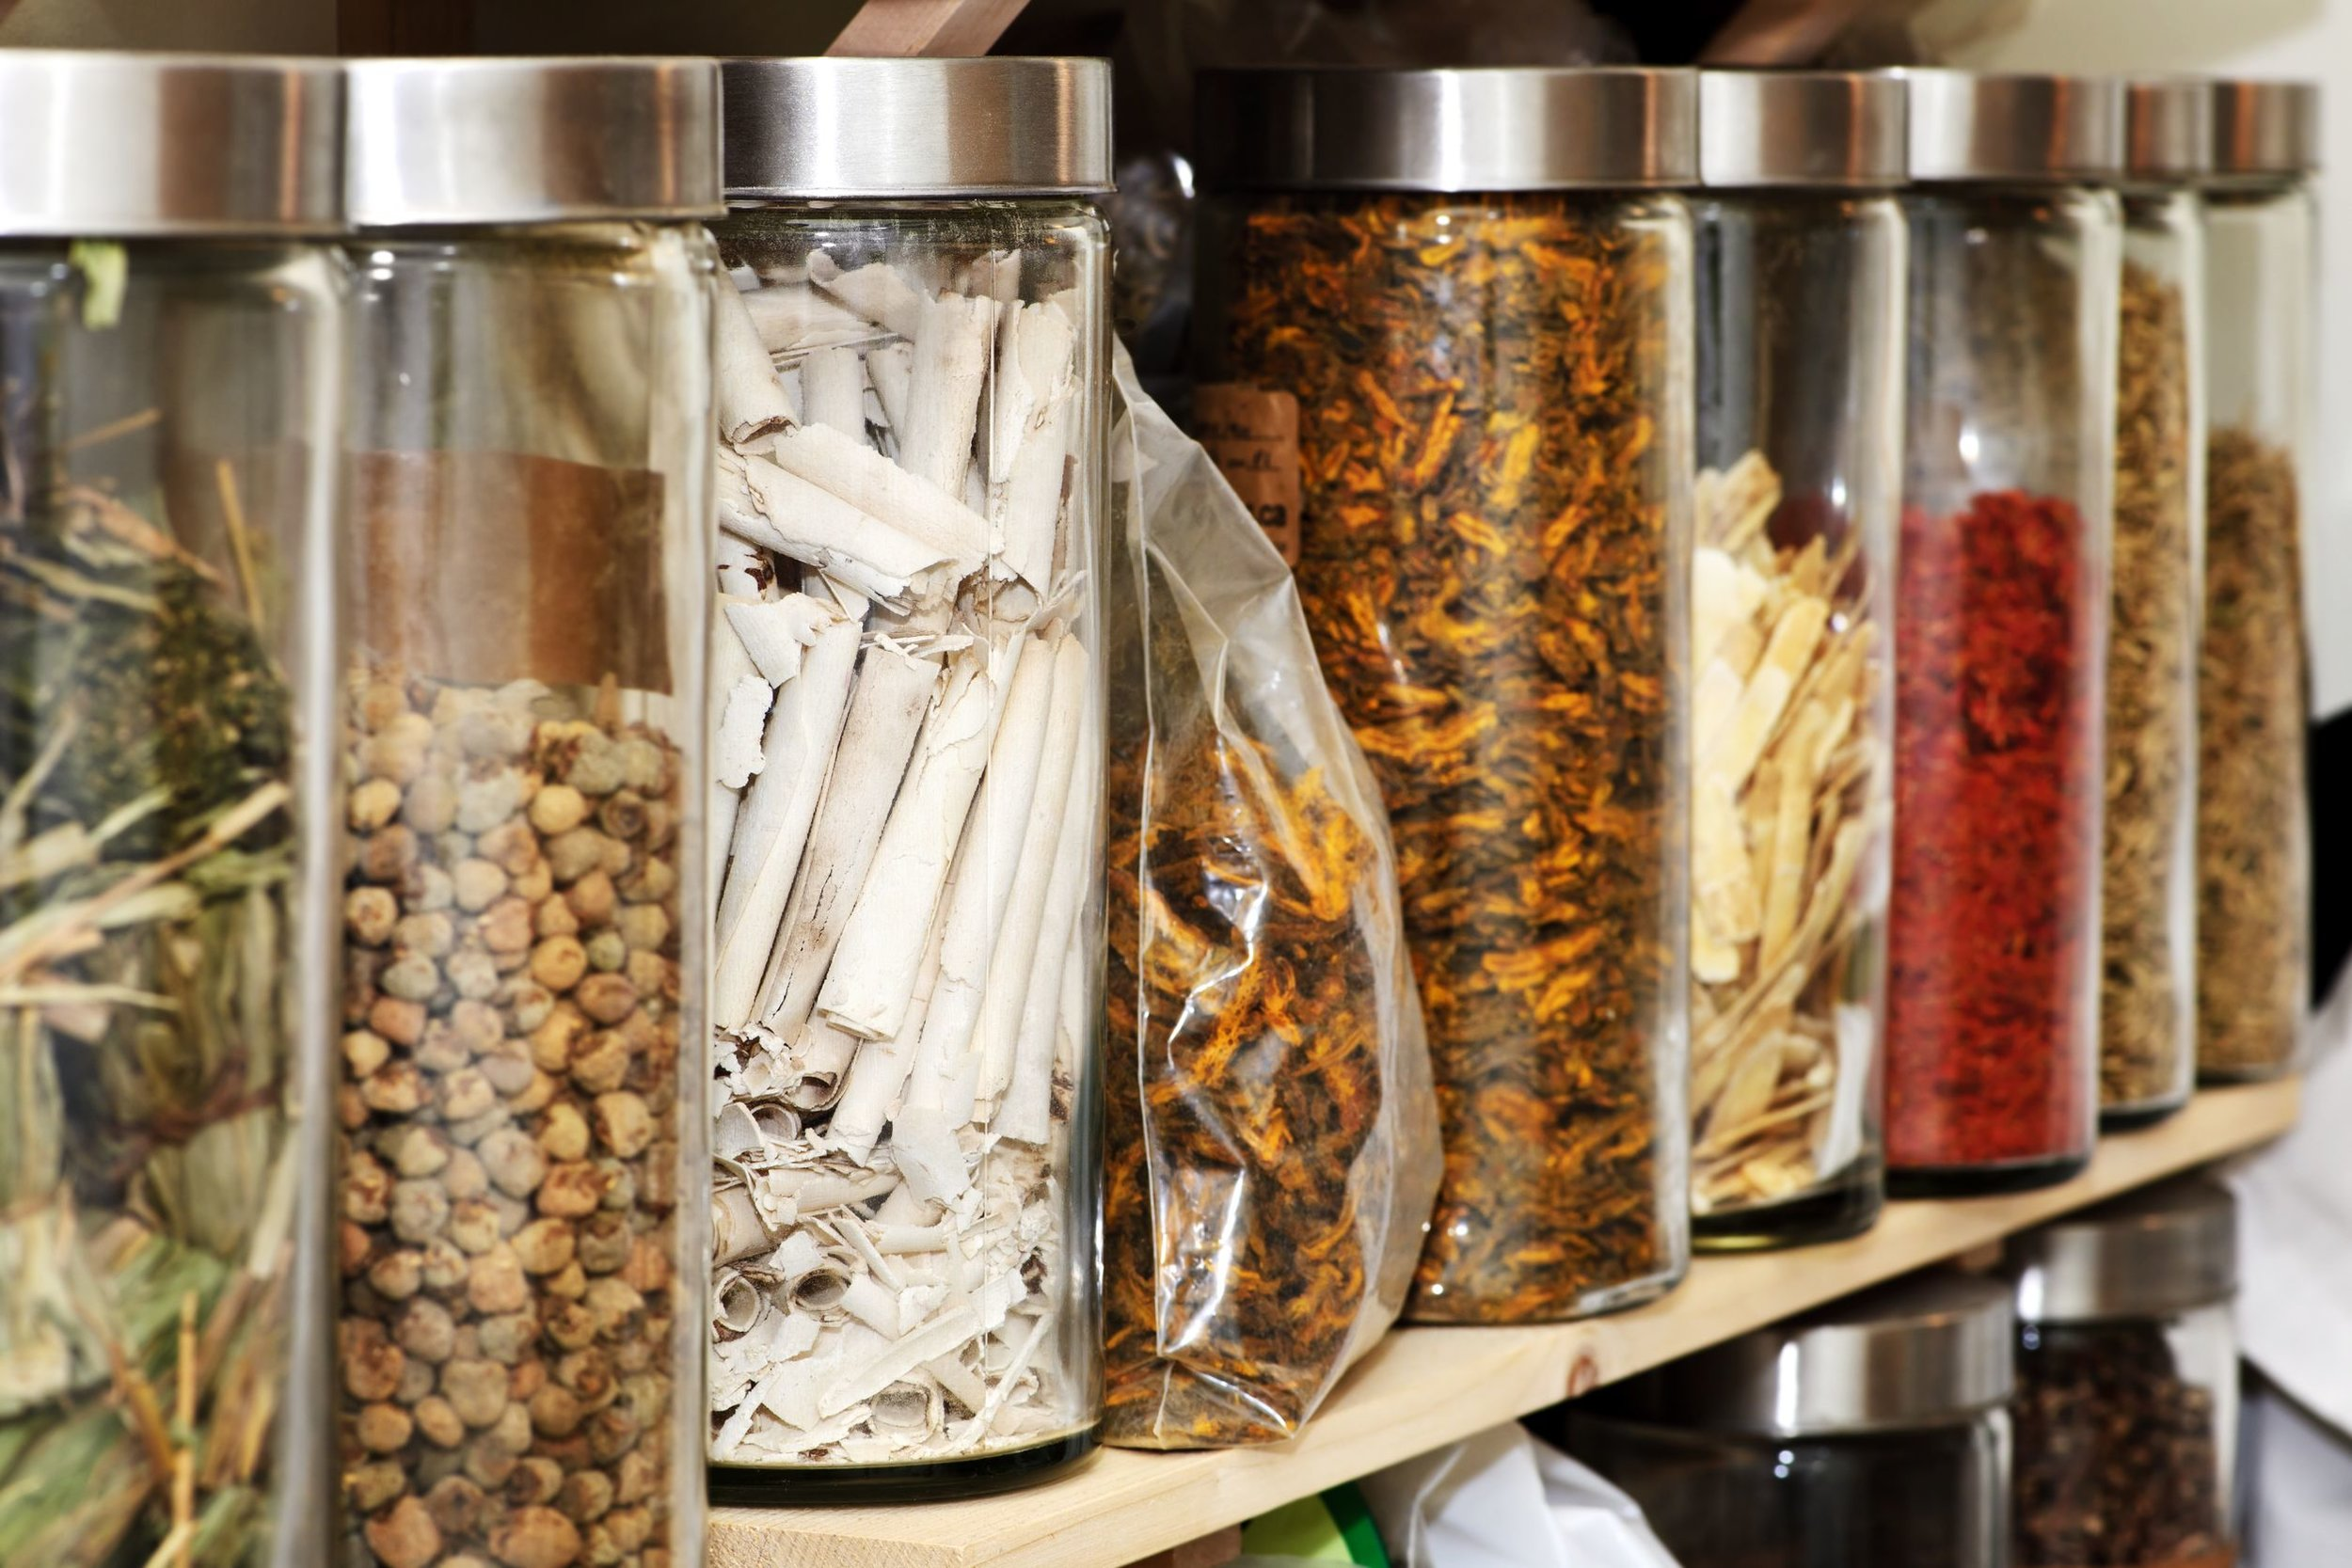 Chinese Herb in jars